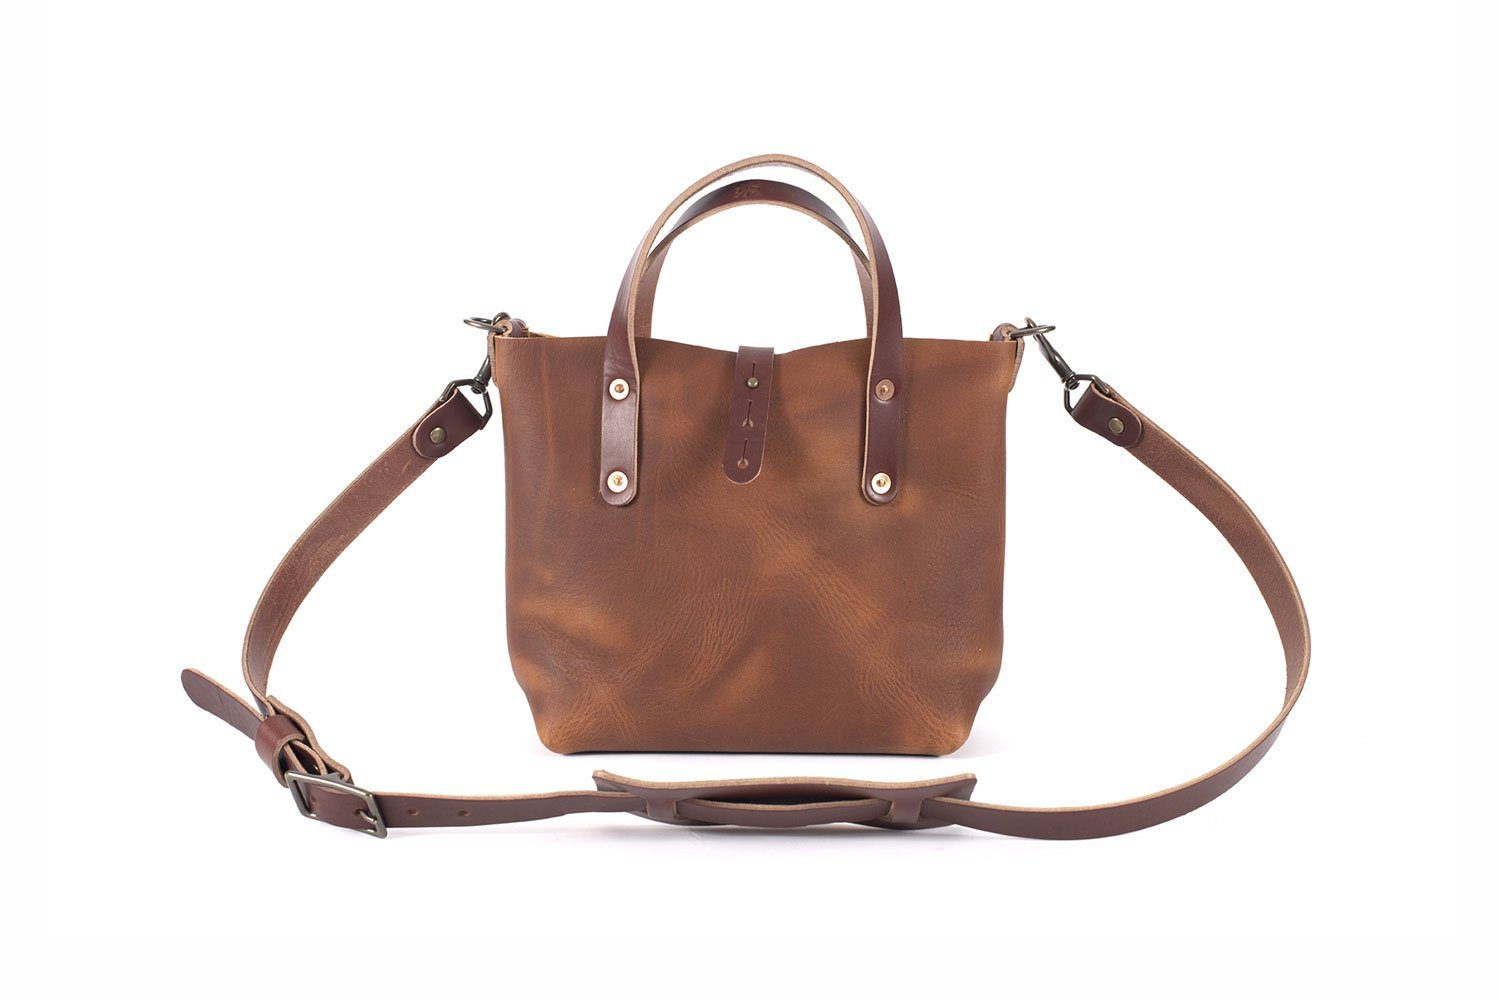 AVERY LEATHER TOTE BAG - MINI CROSSBODY